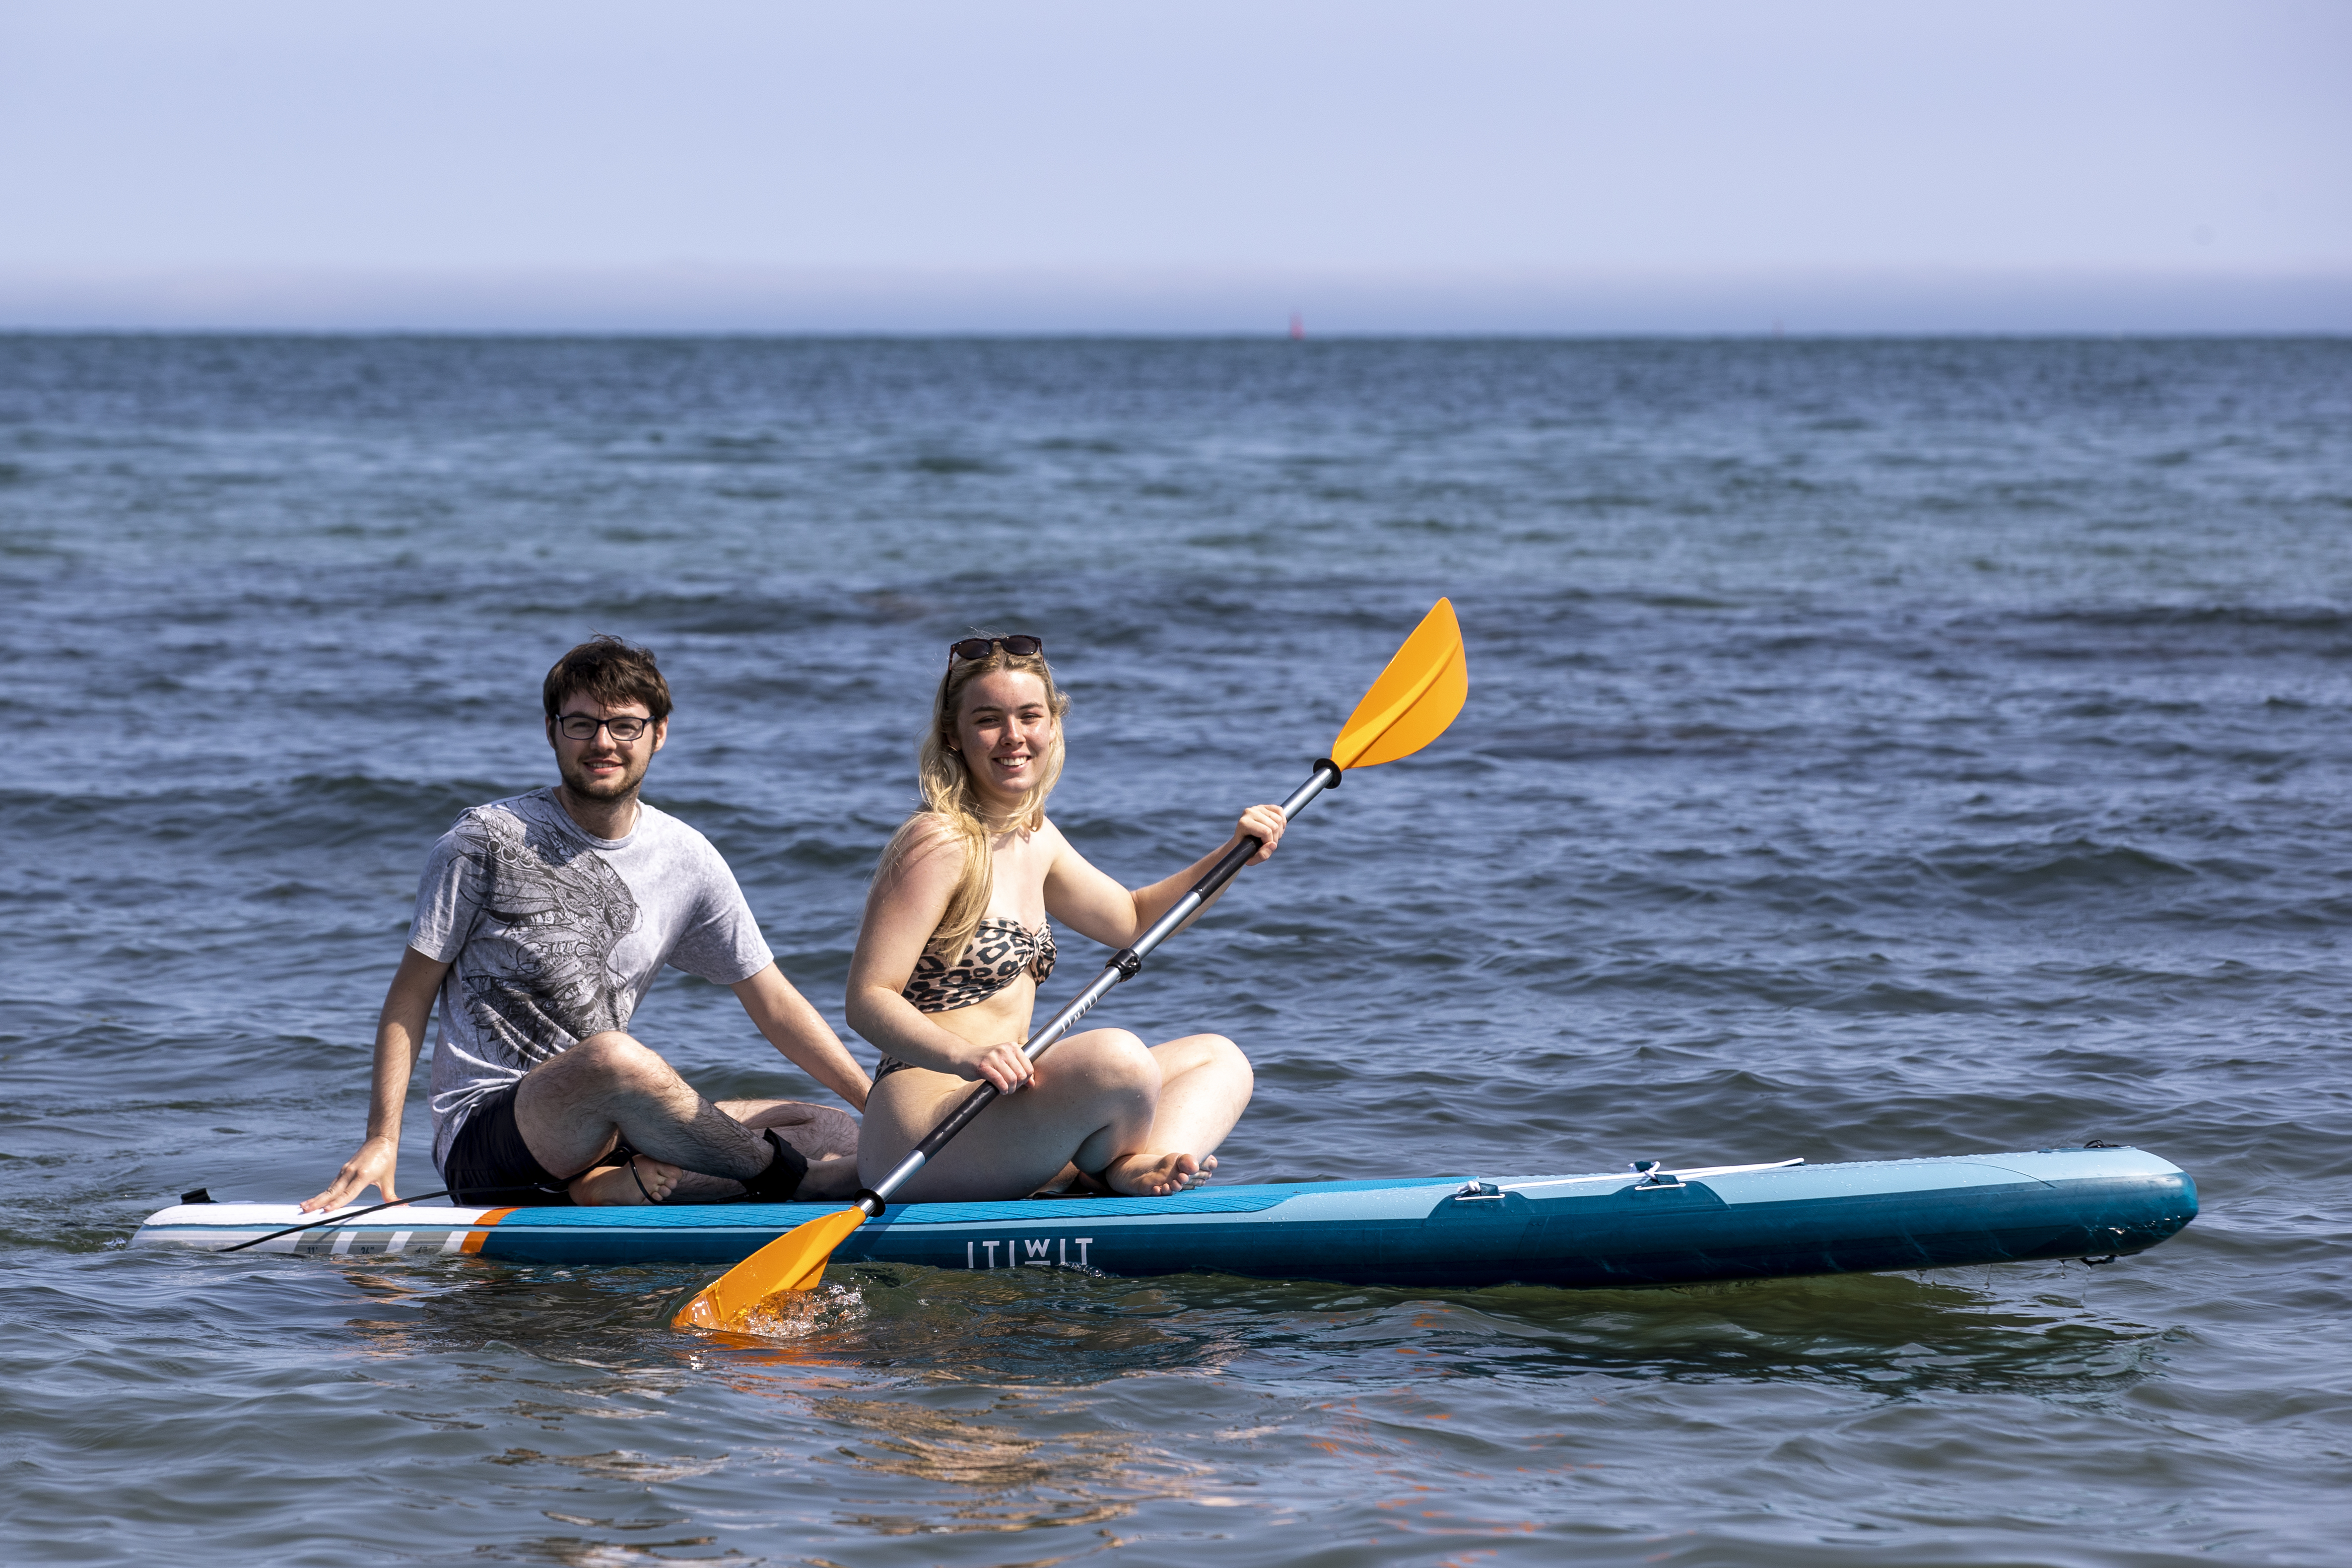 <p>Aneurin Duffin-Murray (left) and Lauren Dalzell from Belfast on a paddle board at Helen�s Bay beach in County Down, Northern Ireland. Picture date: Tuesday July 20 2021.</p>